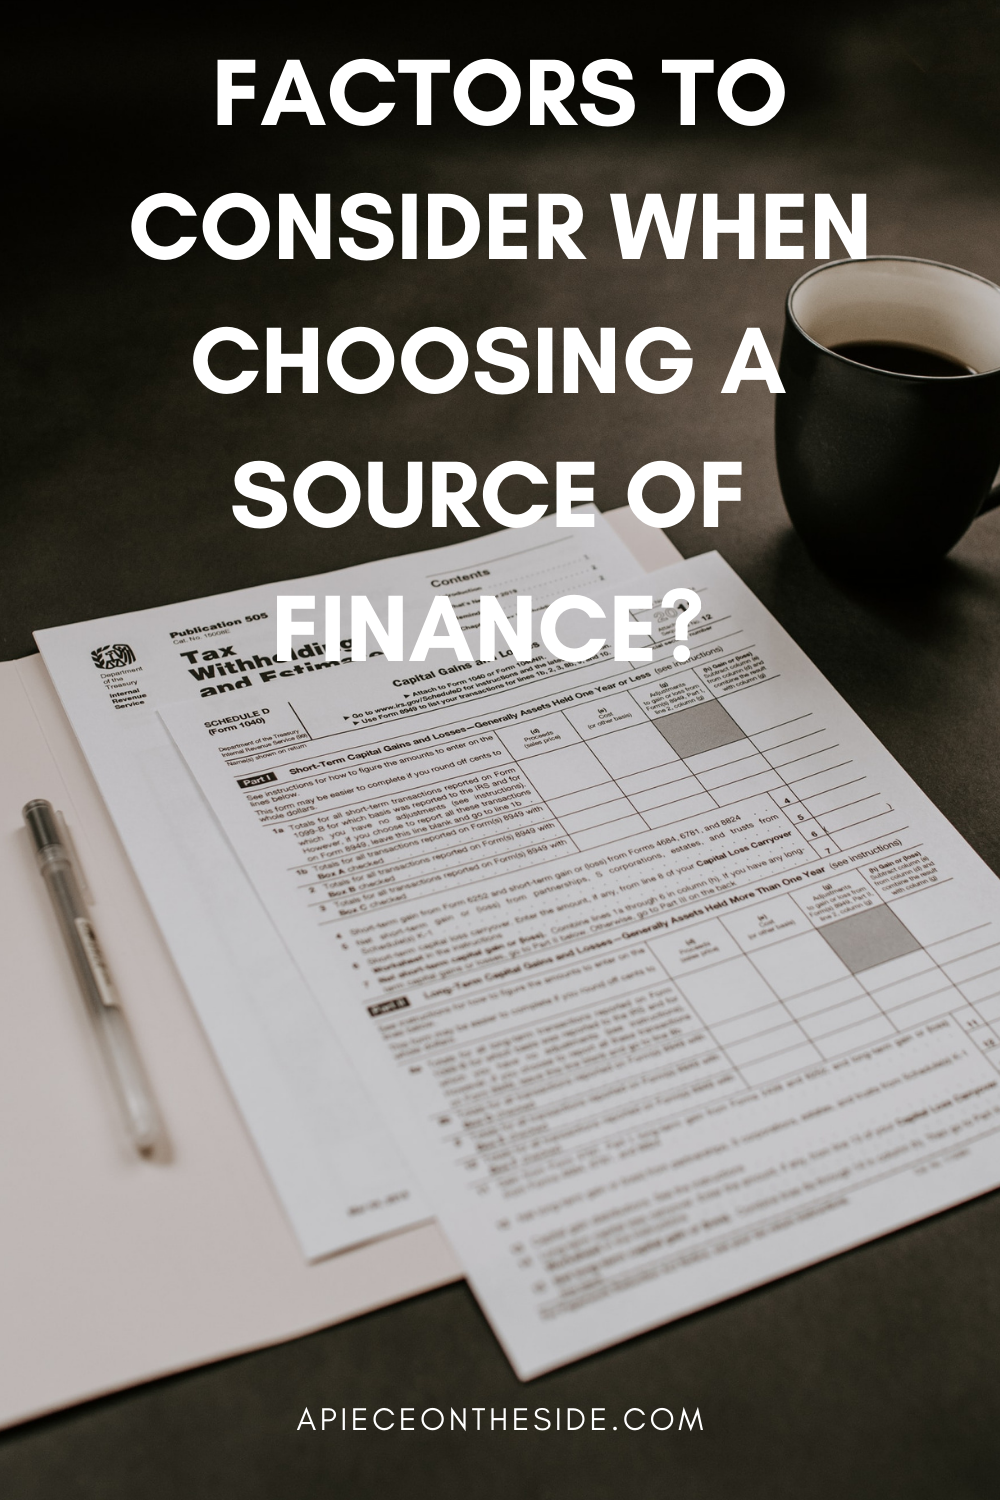 FACTORS TO CONSIDER WHEN CHOOSING A SOURCE OF FINANCE